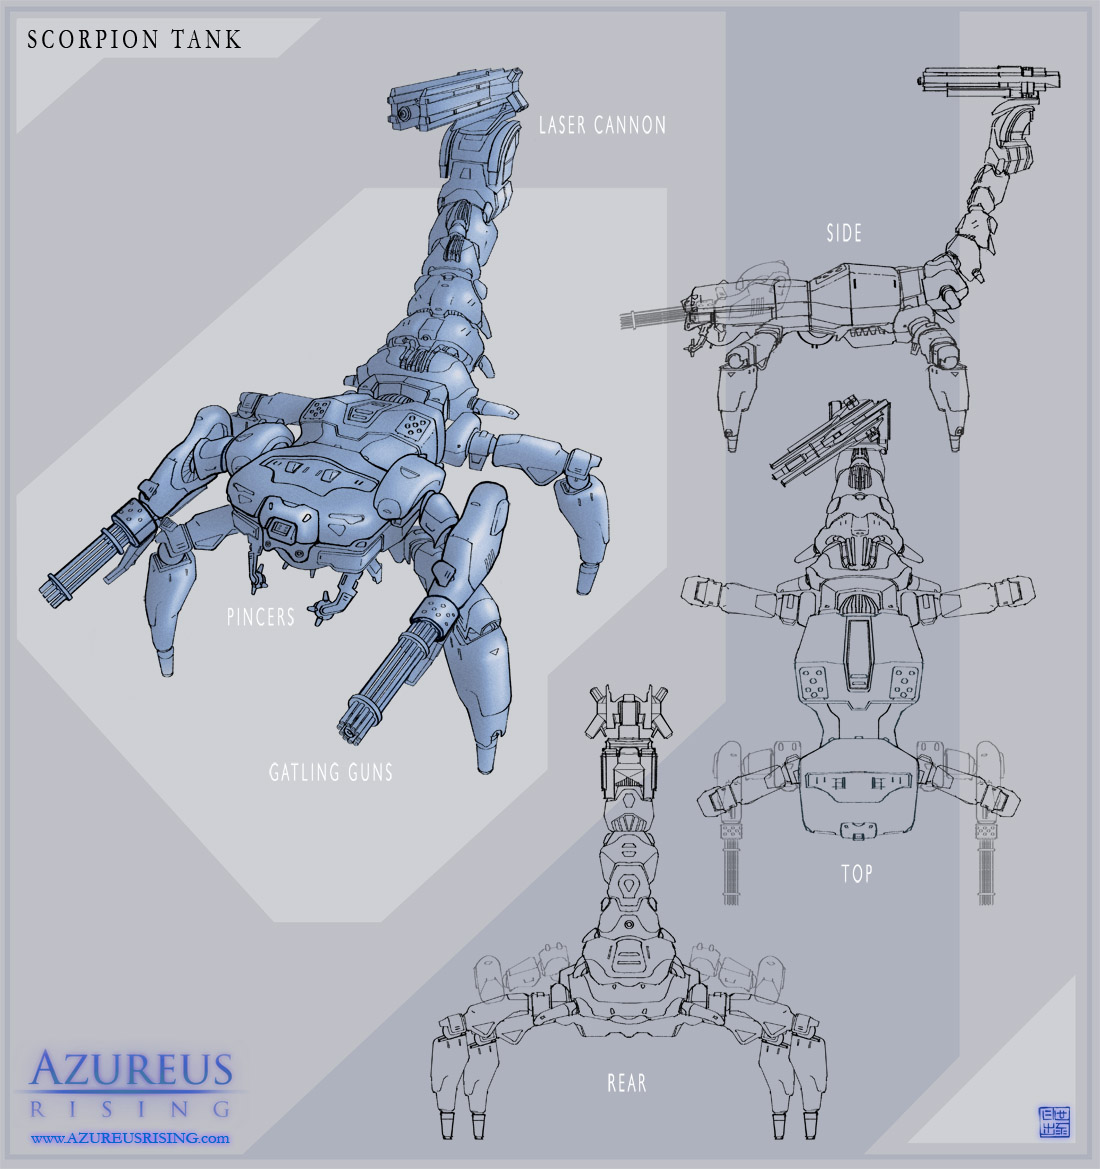 Azureus Rising - Art & Proof of Concept shortfilm